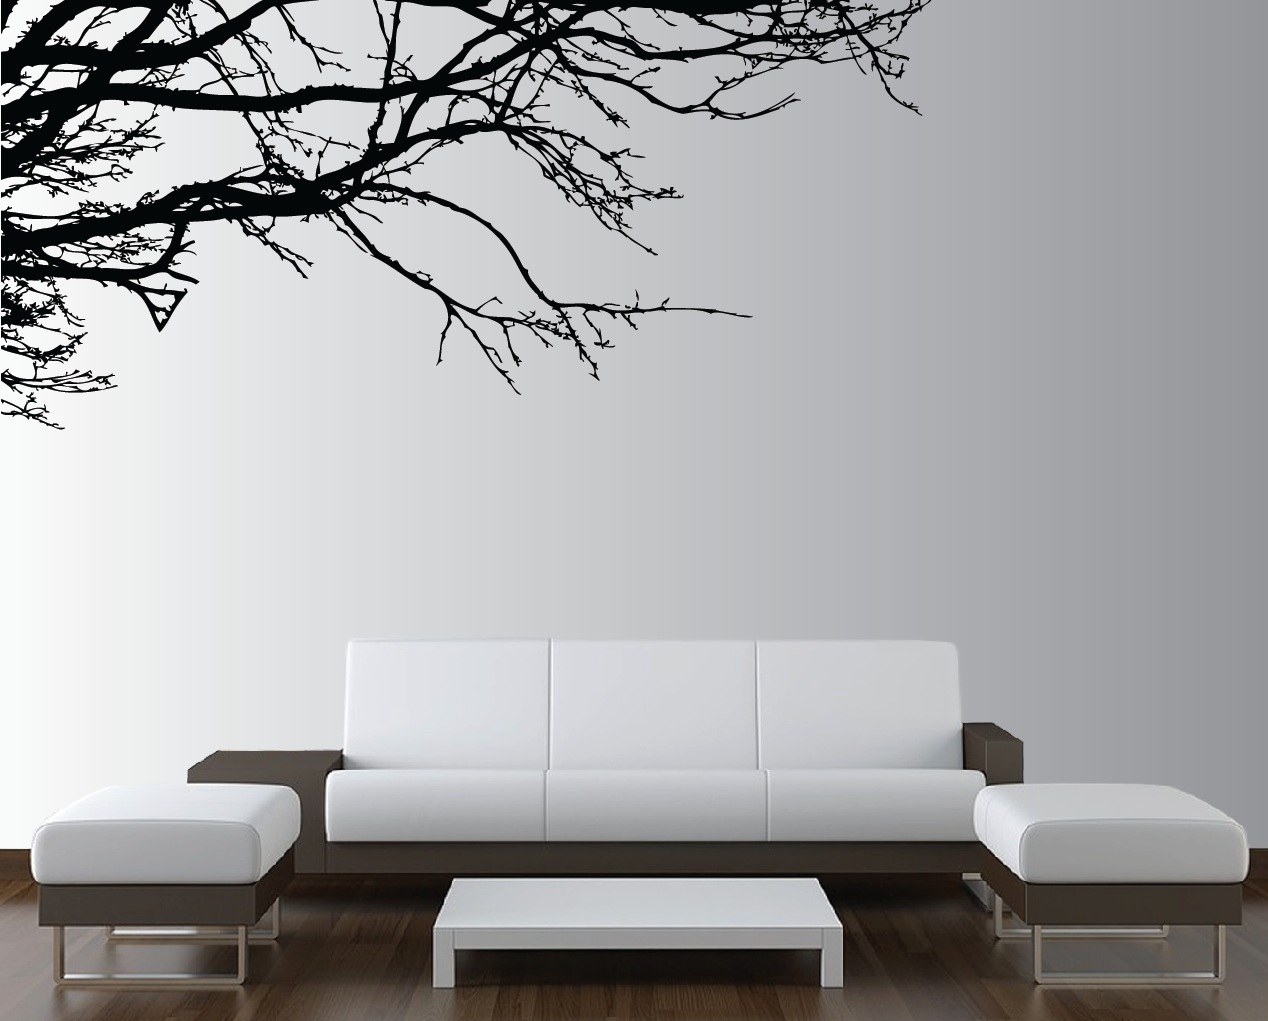 Large wall tree nursery decal oak branches 1130 for Wall hangings for living room